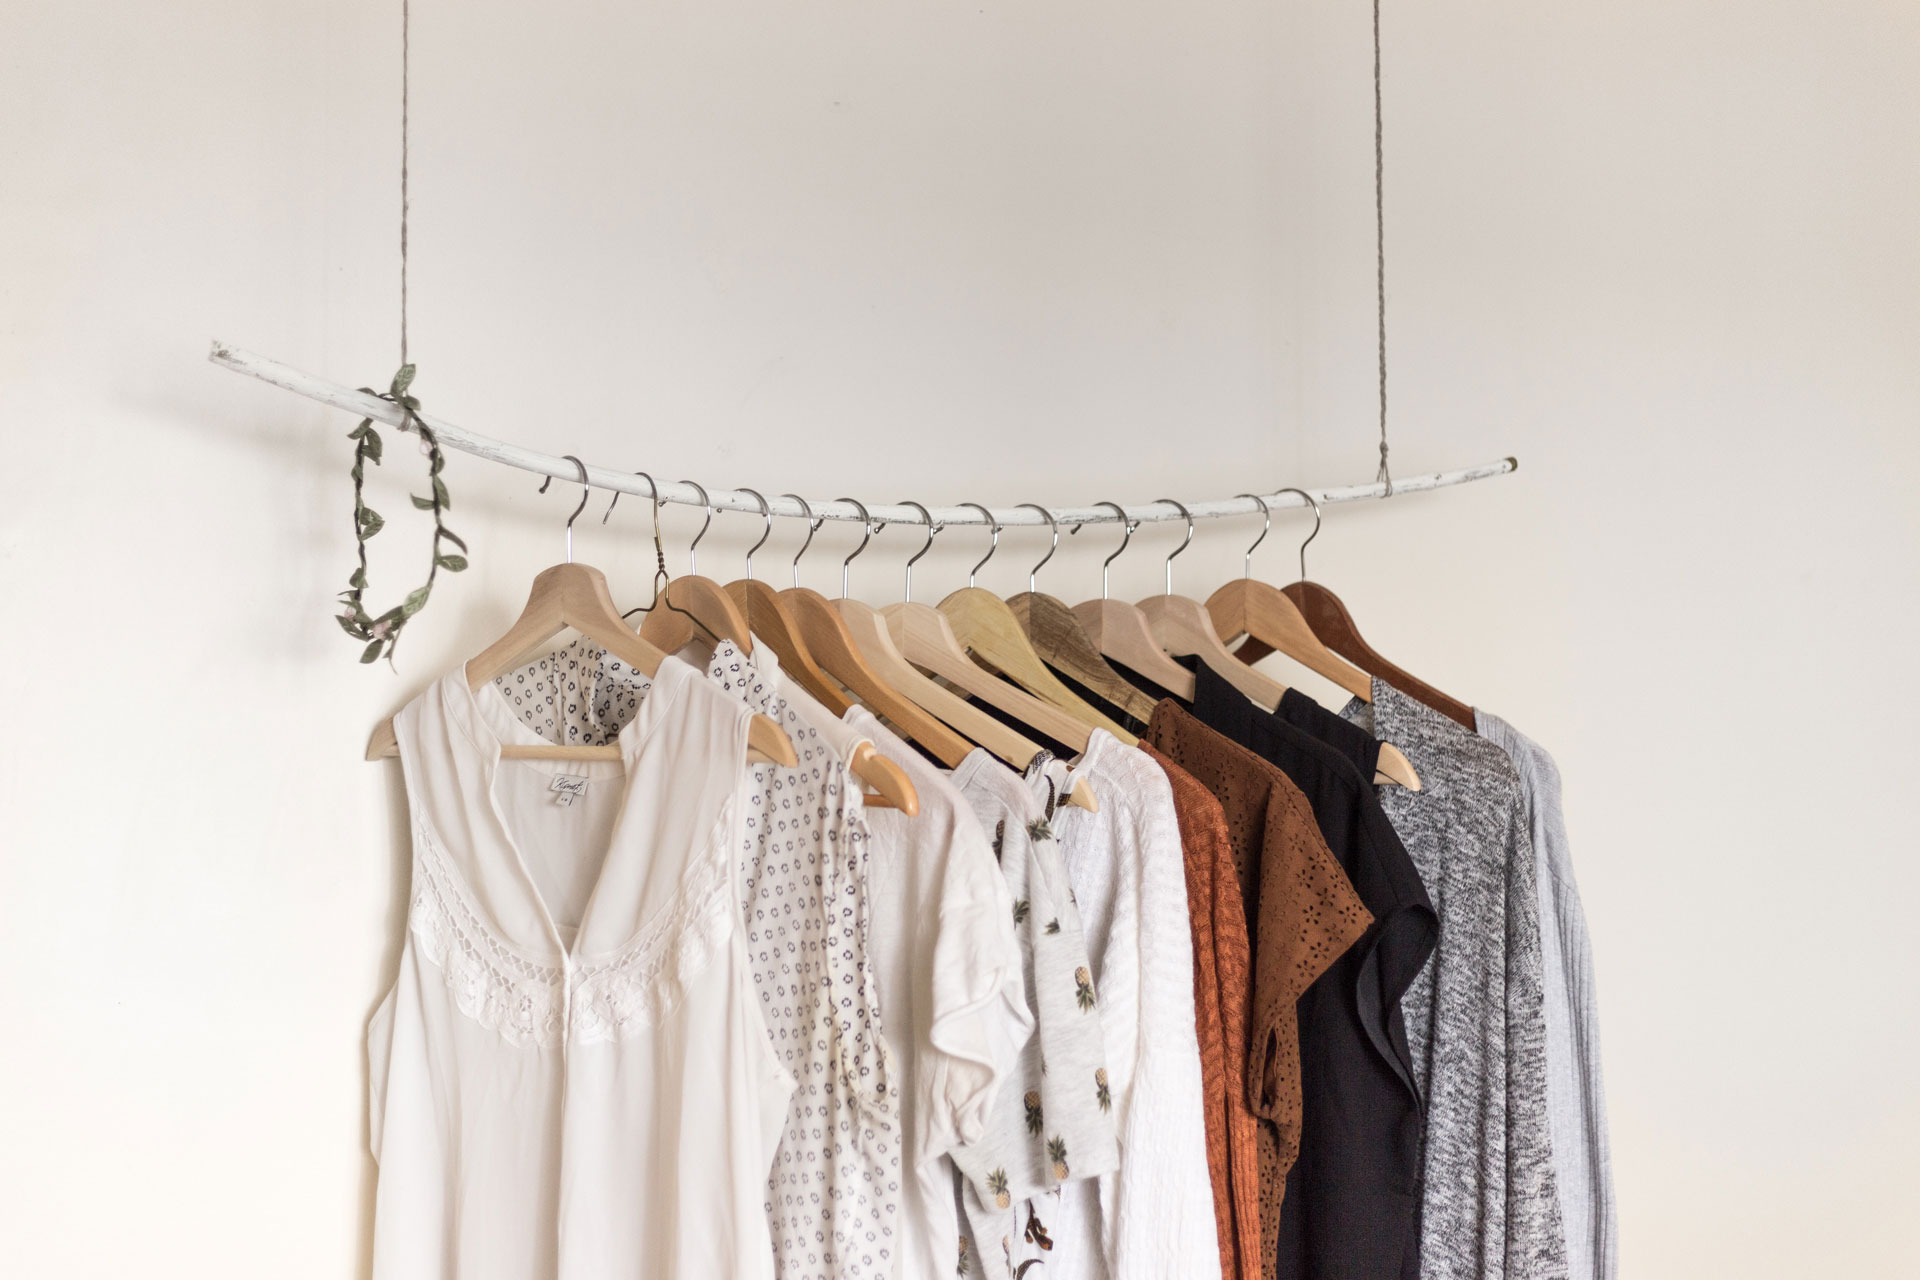 Post Image: Organizational Tips for Storing Clothes In An Apartment